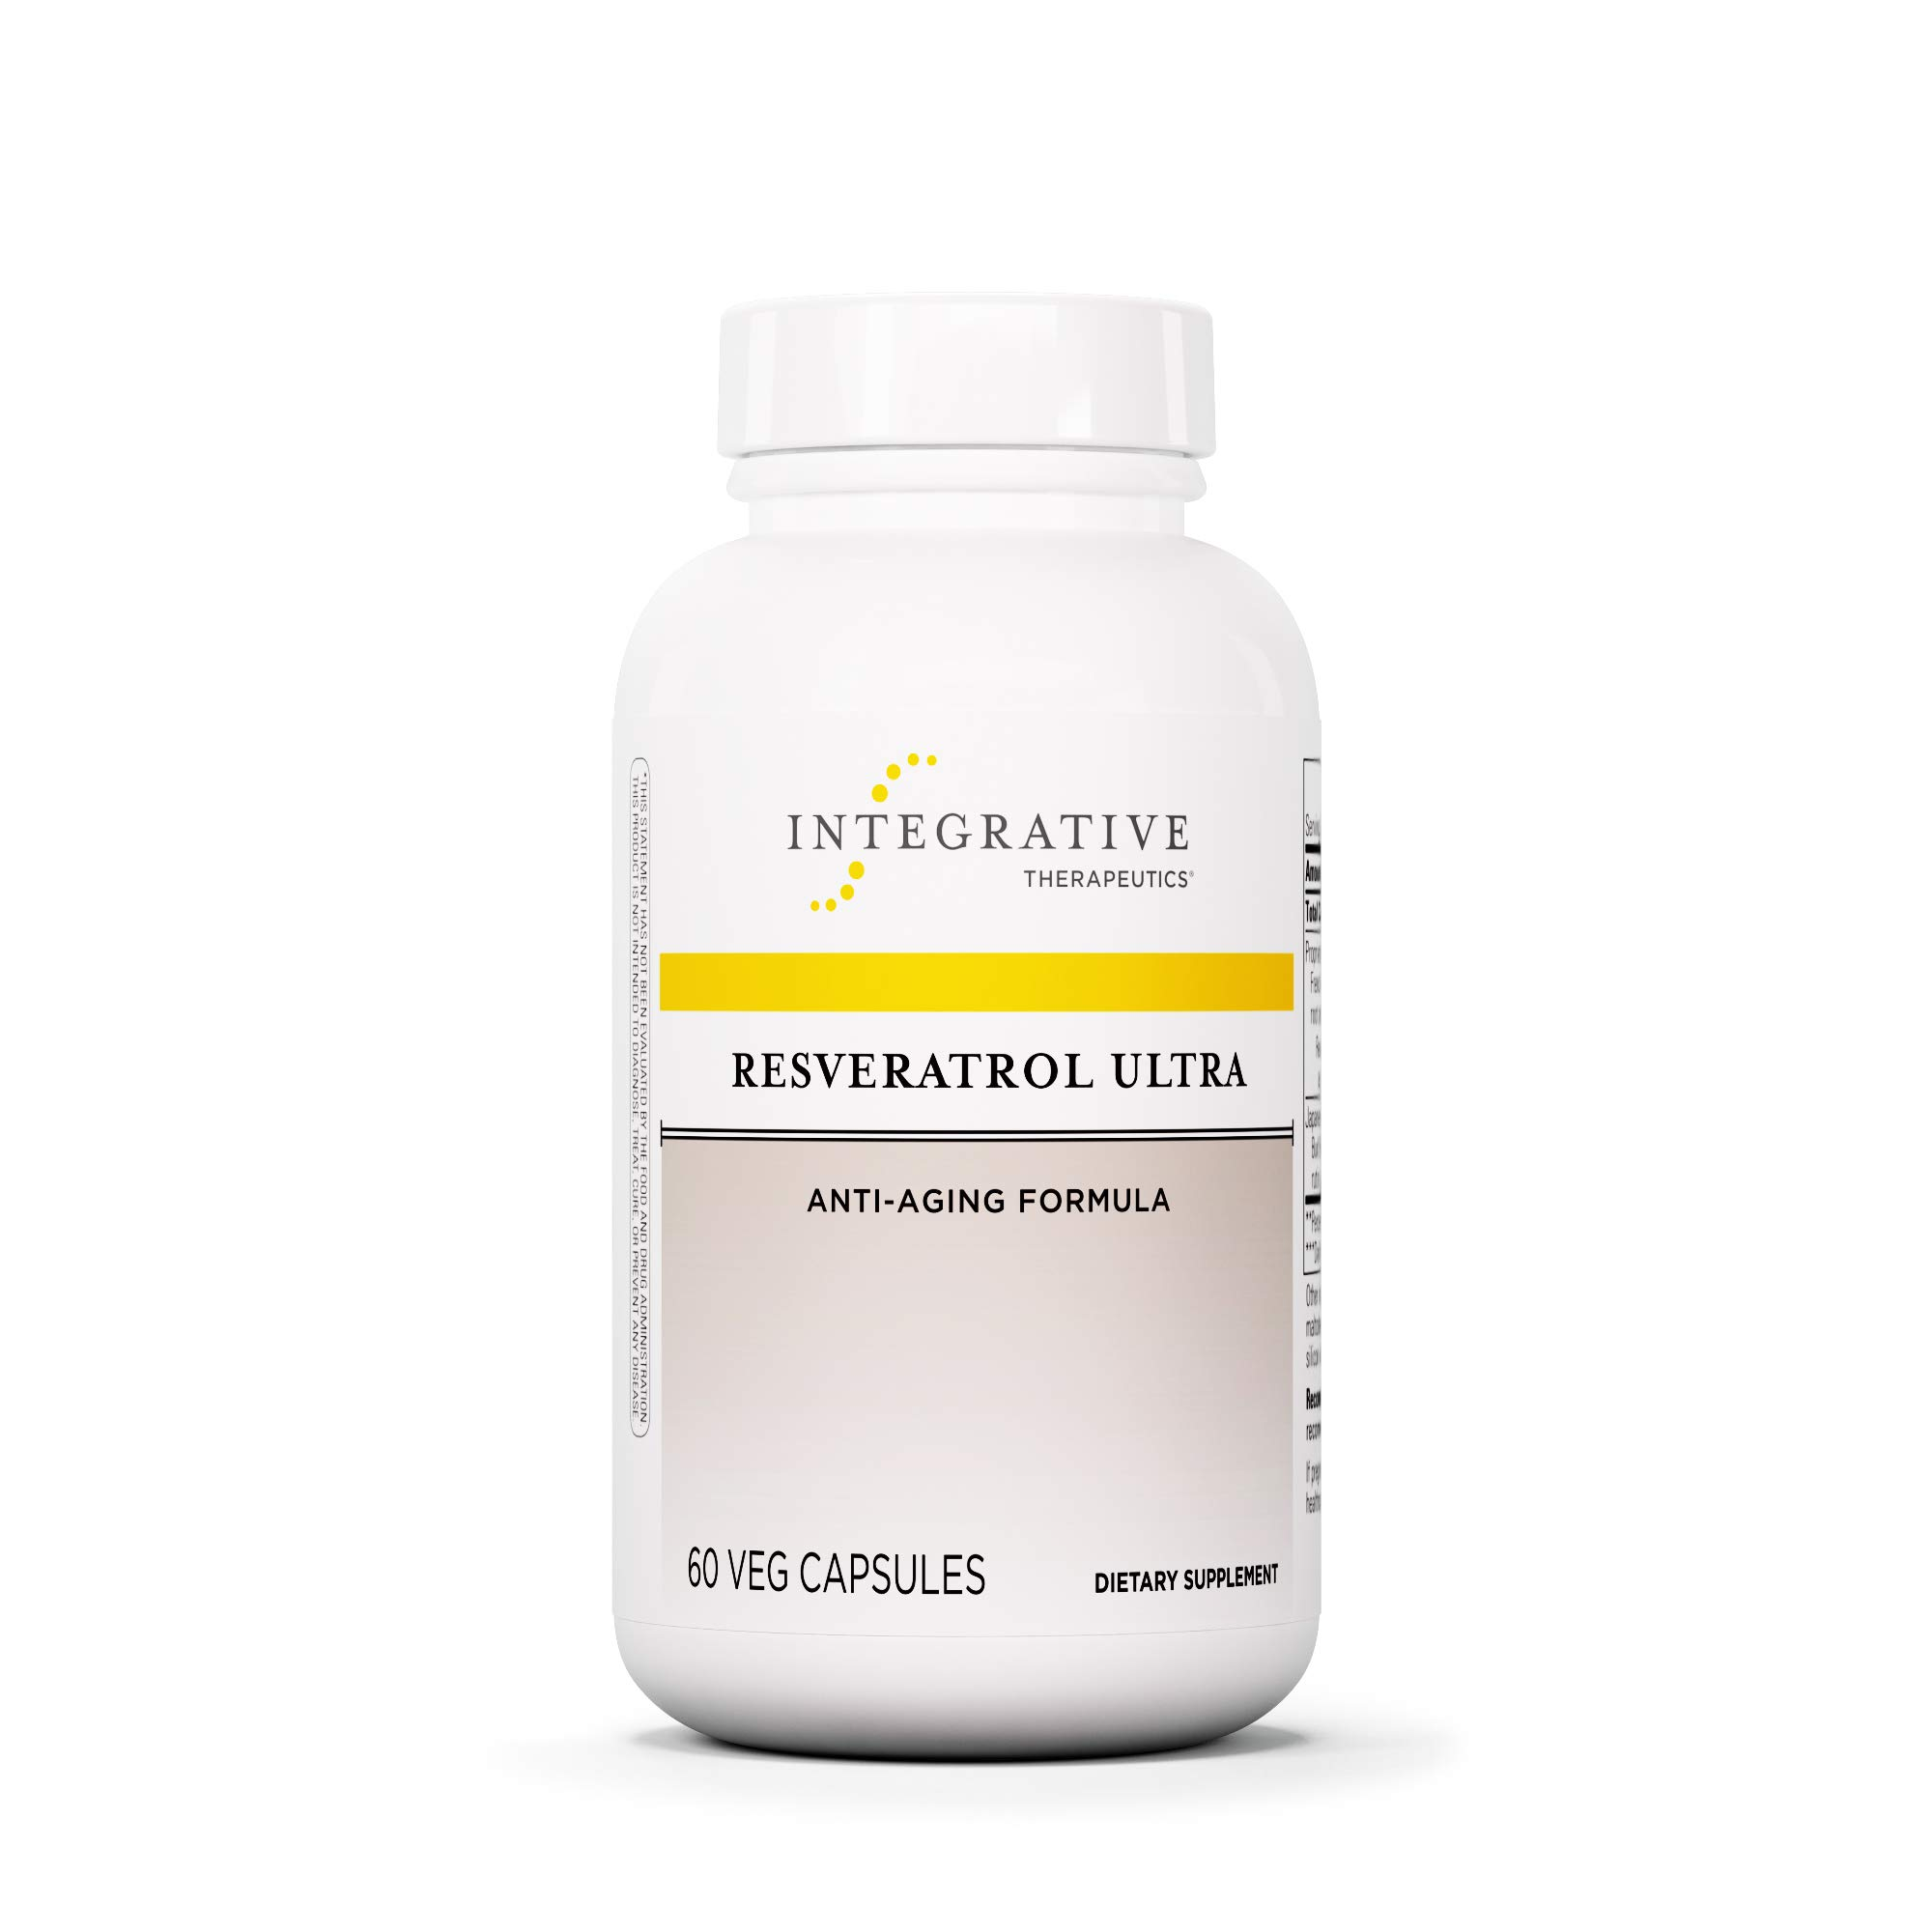 Integrative Therapeutics - Resveratrol Ultra - Anti Aging Formula - Spports Cellular Health to Reduce Oxidative Stress - 60 Capsules